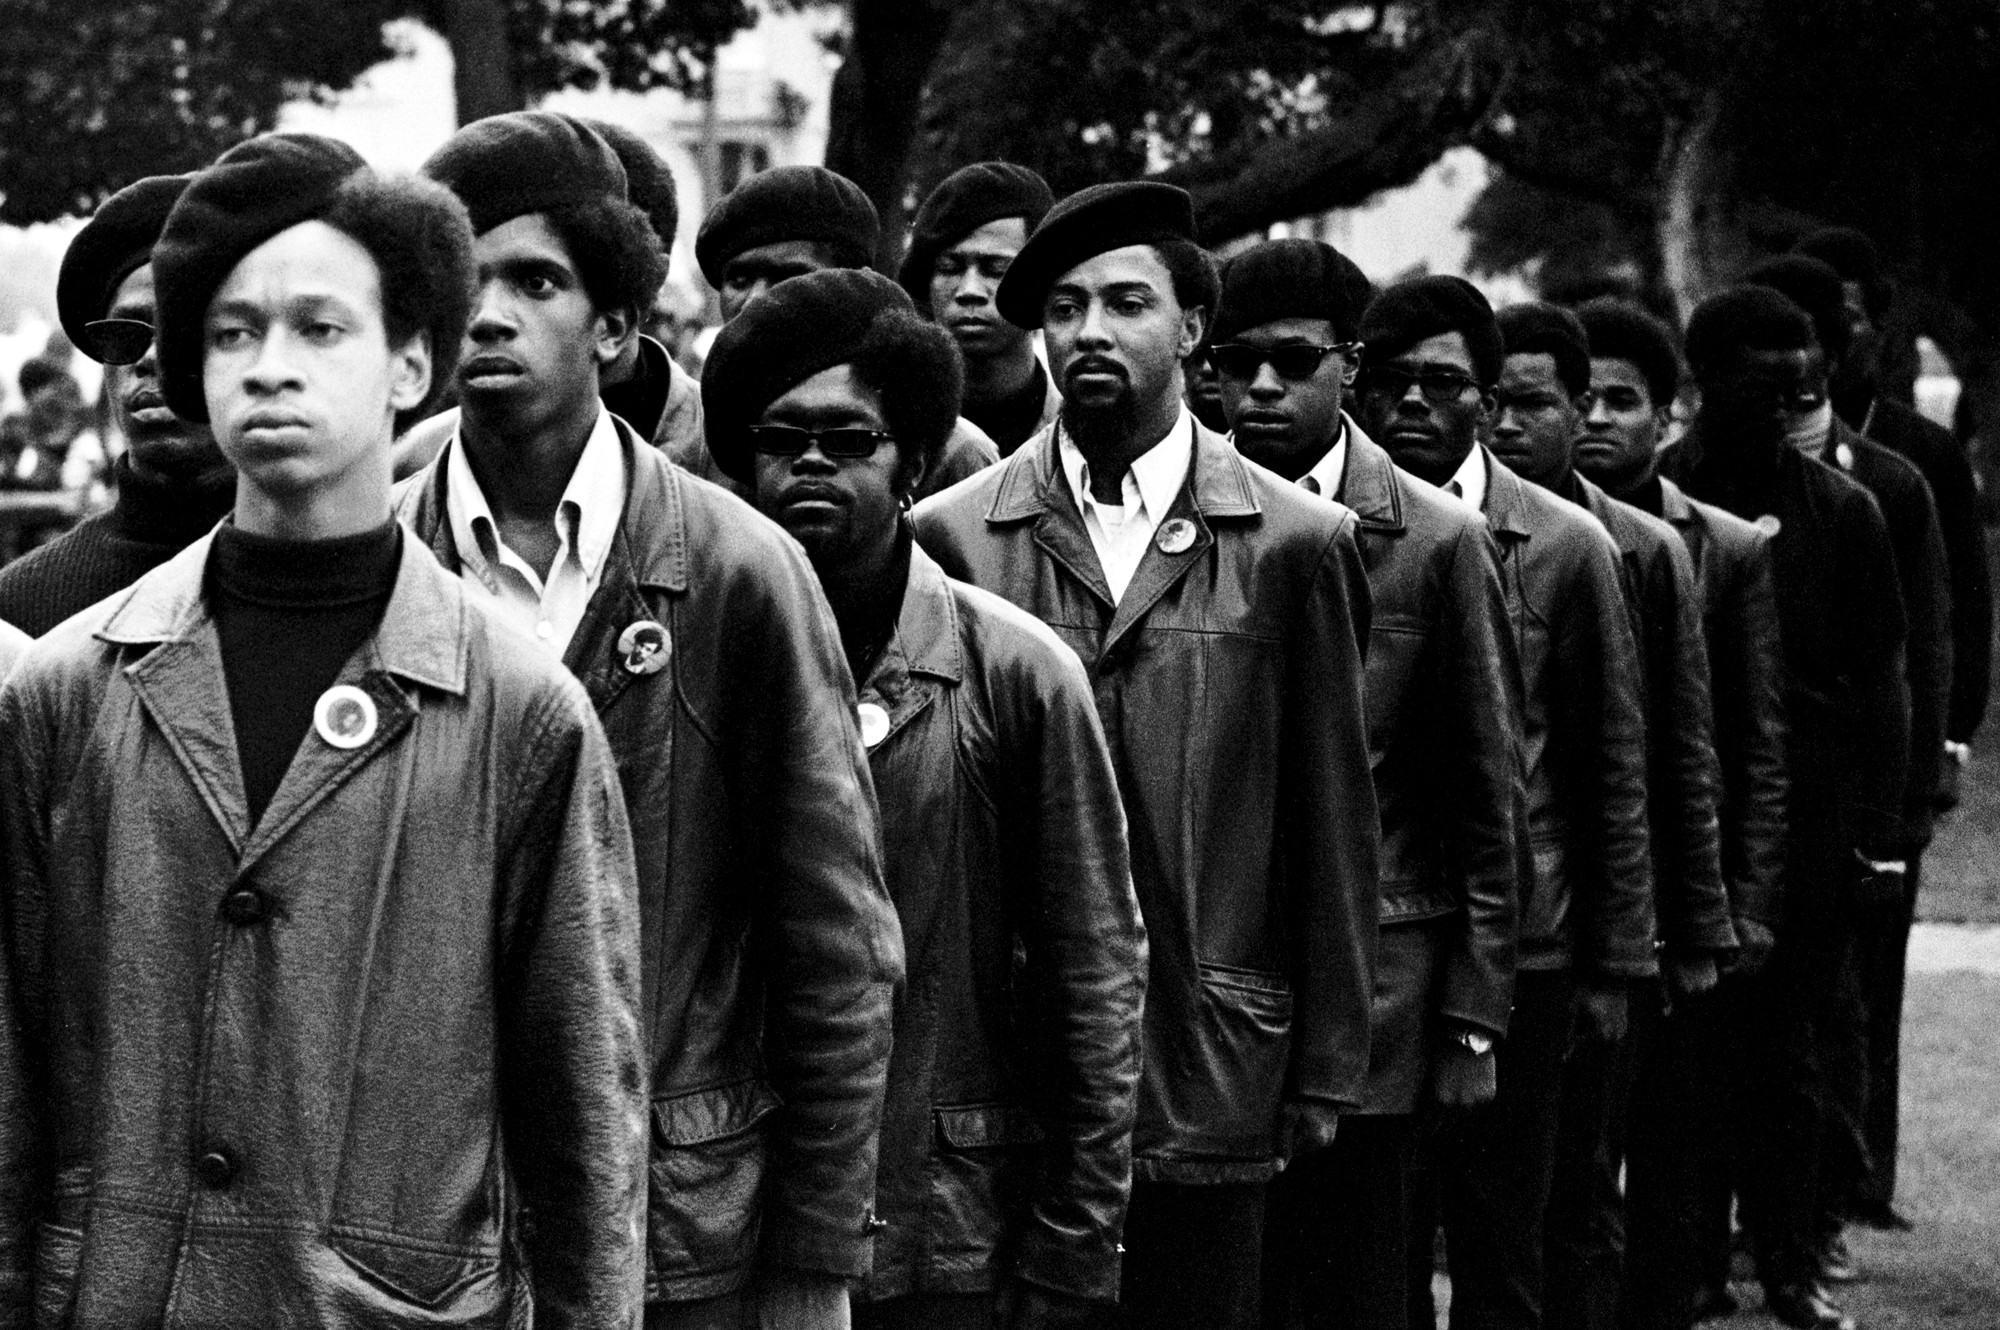 The Black Panthers: Vanguard of the Revolution. 2015. USA. Directed by Stanley Nelson. Courtesy of Stephen Shames